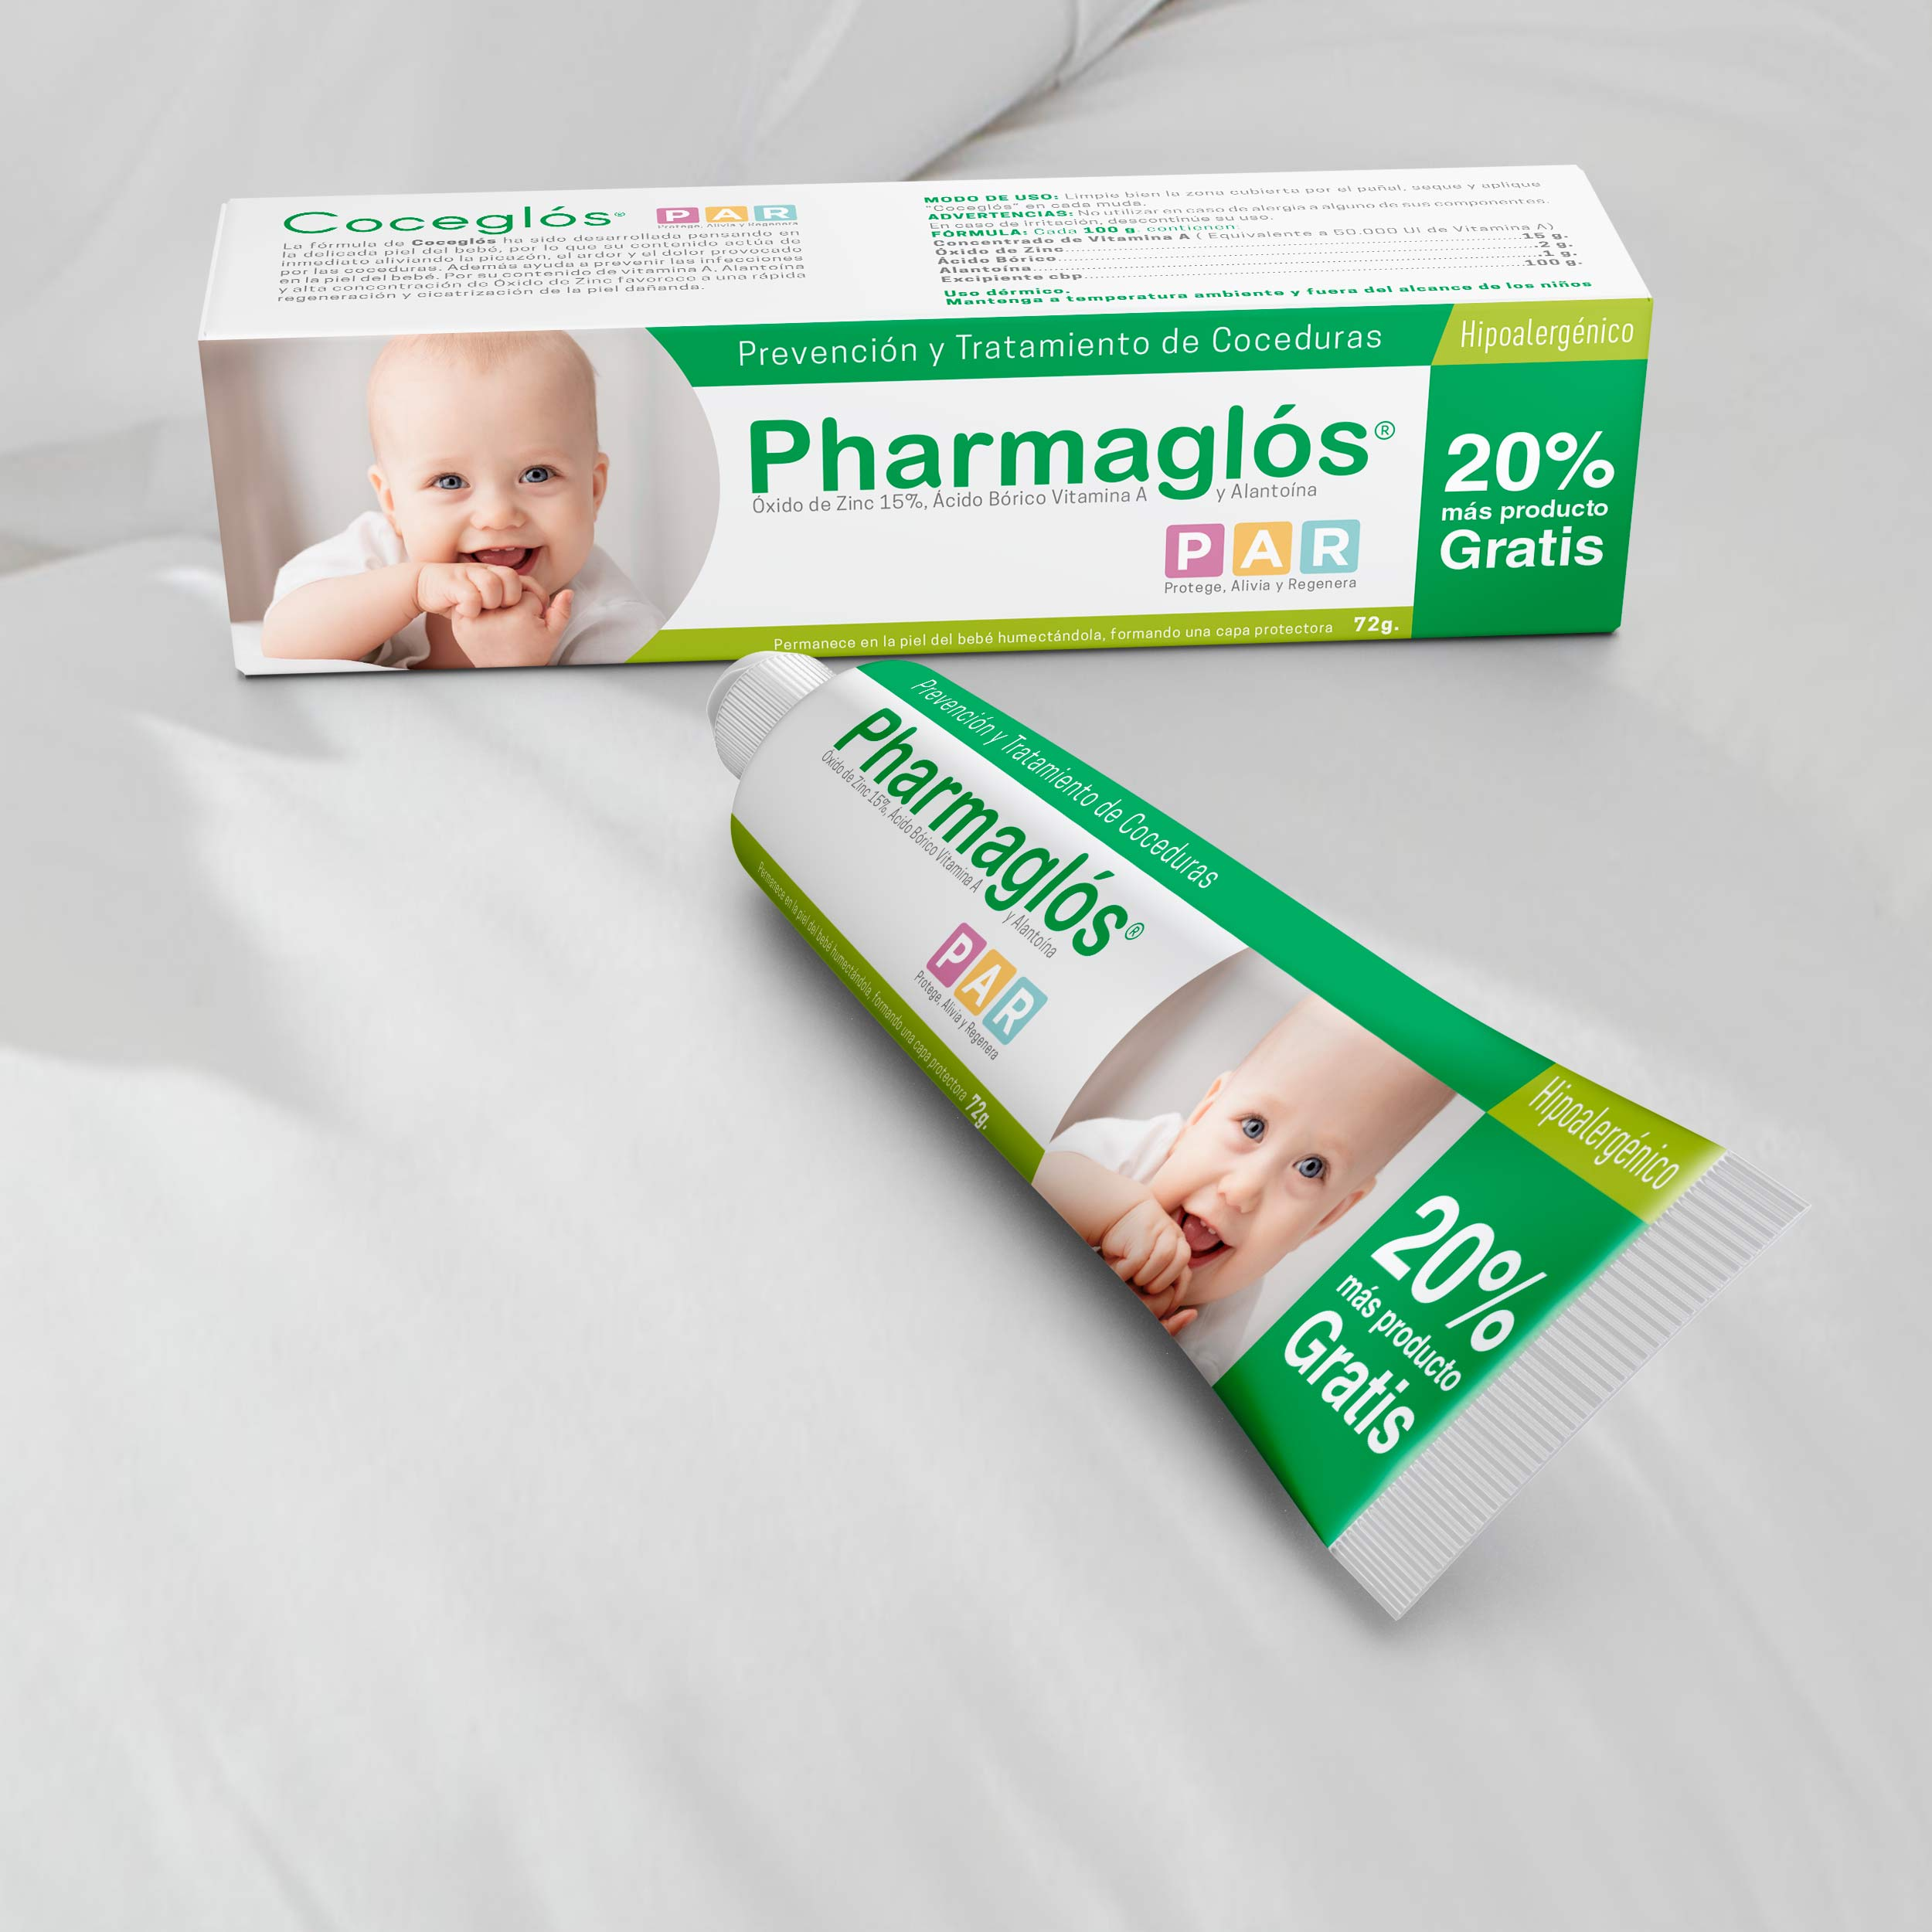 Diseño packaging productos Pharmaris